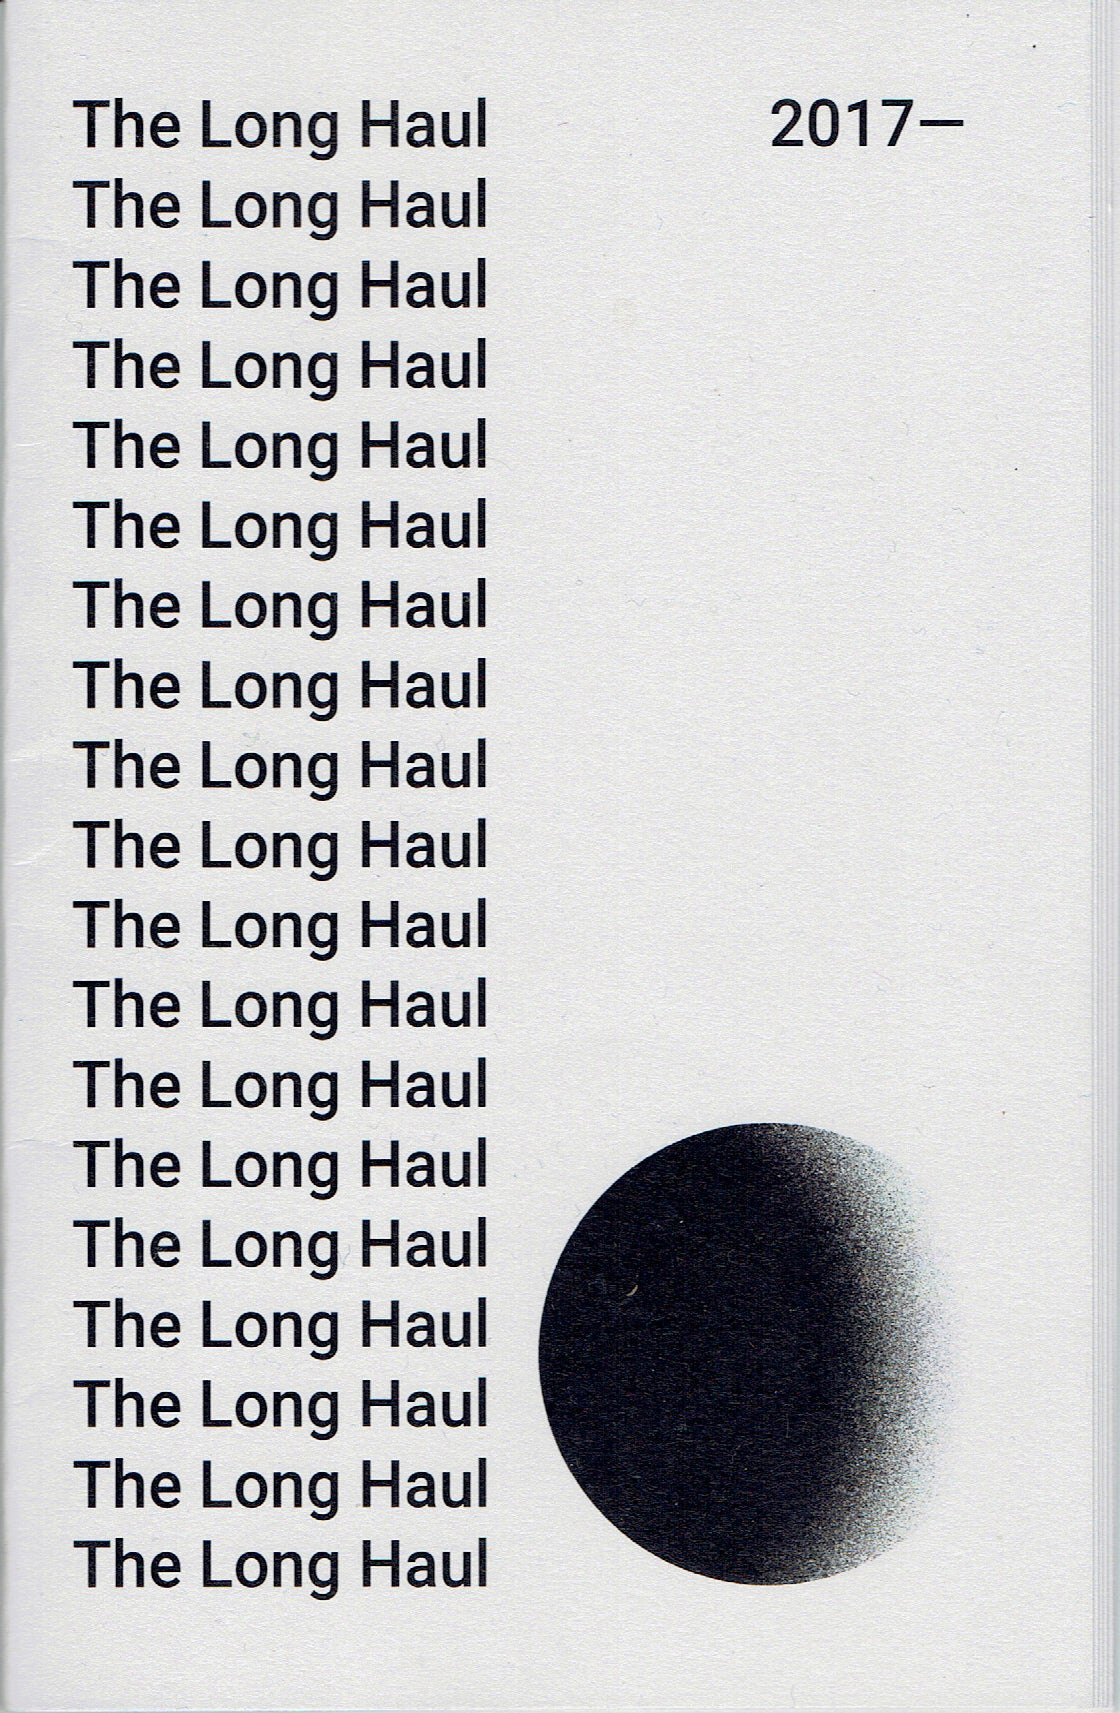 Image of The Long Haul Zine